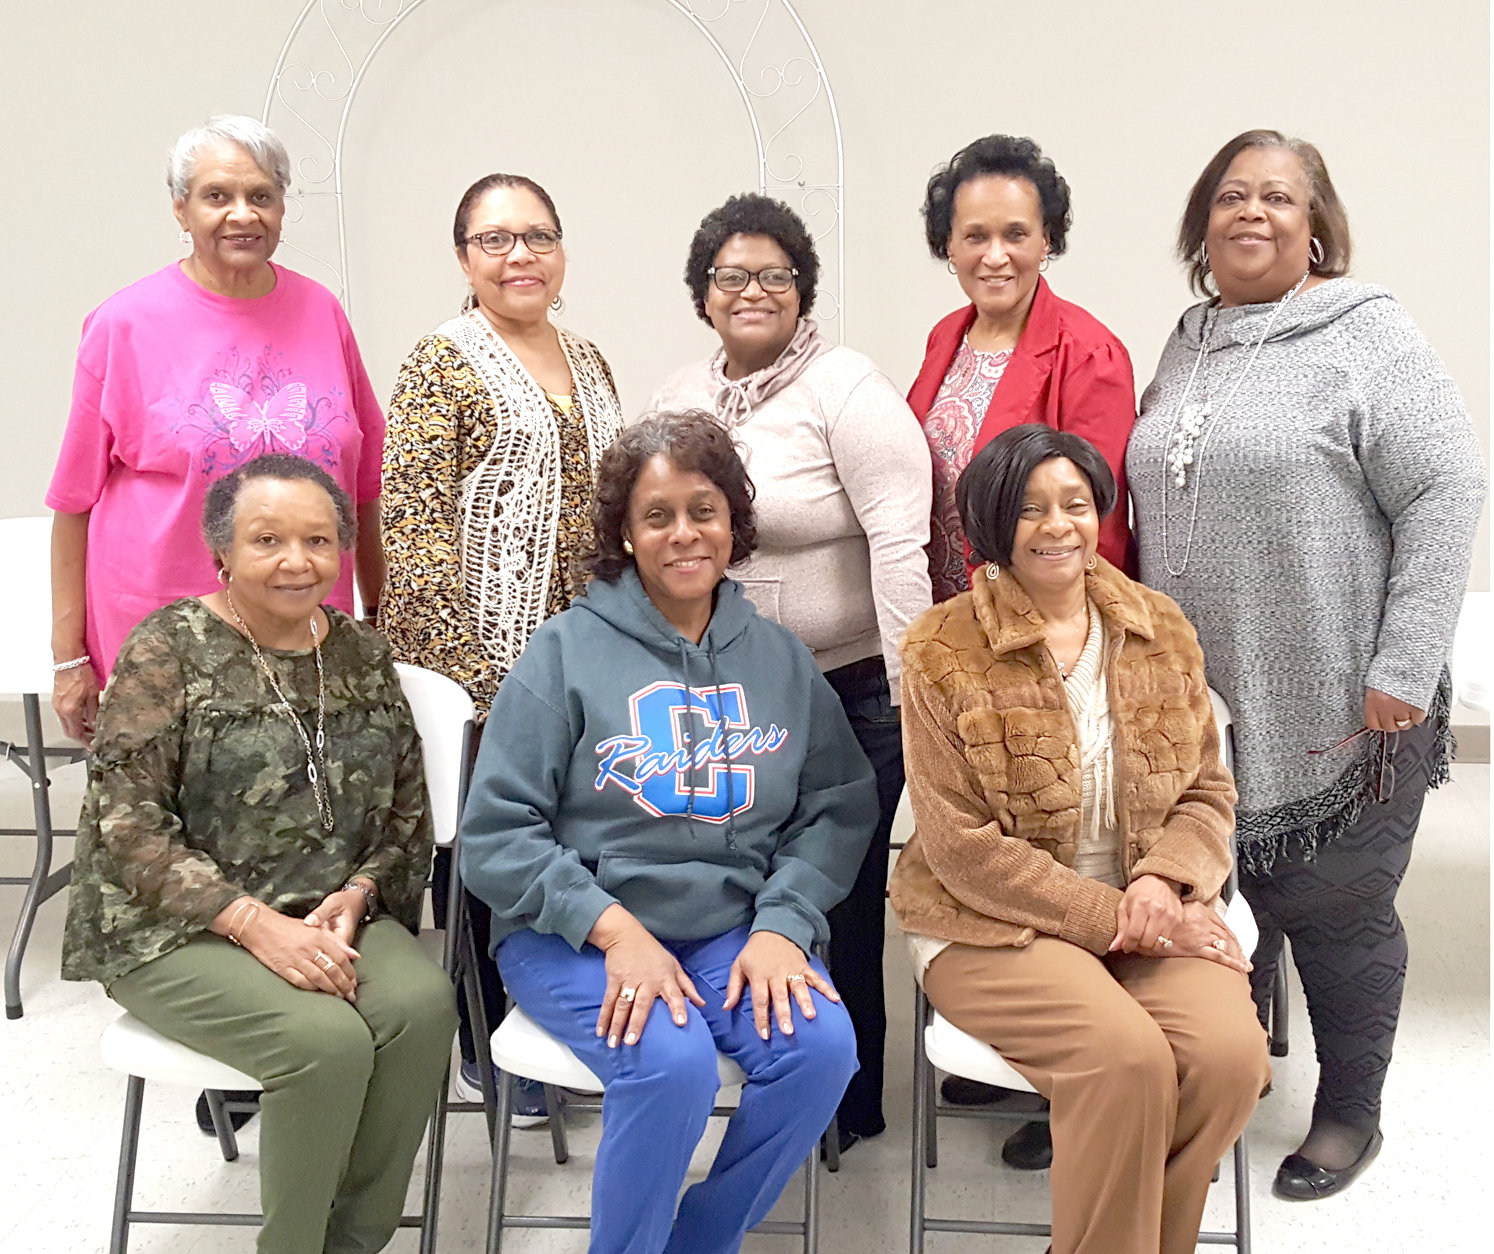 The Aldersgate Garden Club held its February meeting at the Pleasant Grove Baptist Church.  Those in attendance were, from left seated,   Charlotte Timberlake, Edwina Robinson, and Cynthia Humes;  standing,  Billie Blair, Kay Cox, Joan Steward, Lelia Johnson and Jackie Westfield.